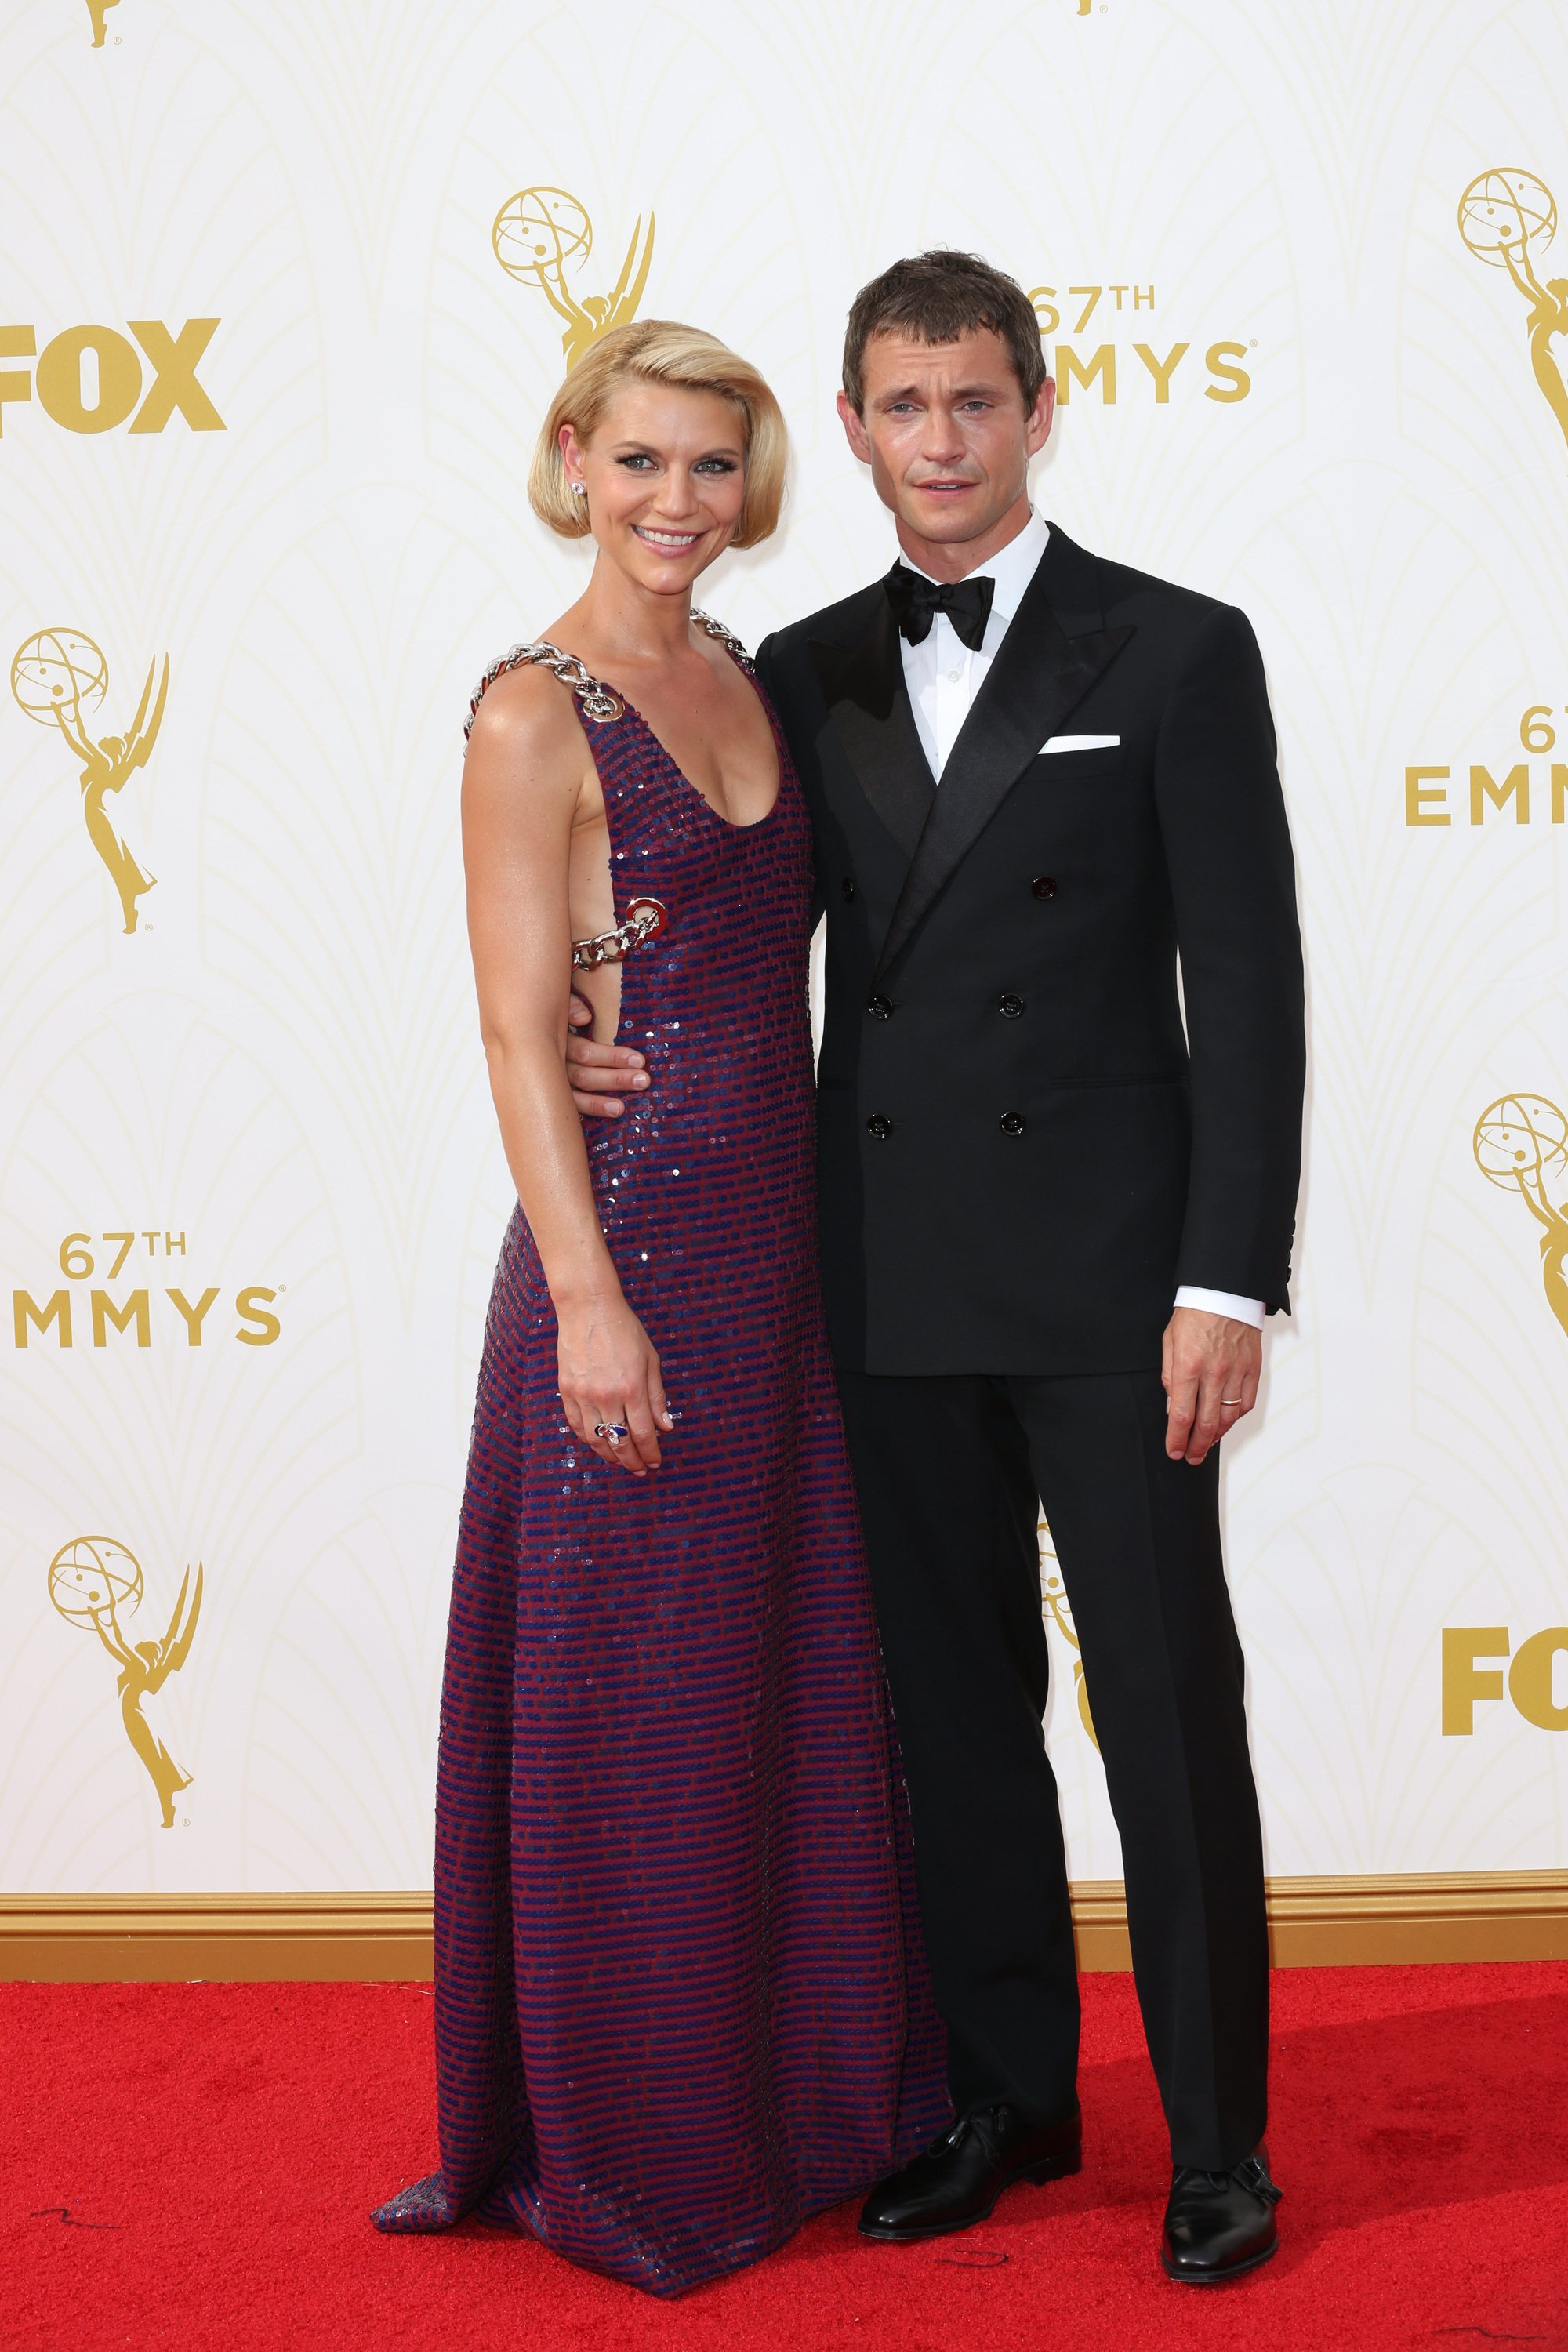 Celebrities arrive at 67th Emmys Red Carpet at Microsoft Theater.  Featuring: Claire Daines, Hugh Dancy Where: Los Angeles, California, United States When: 20 Sep 2015 Credit: Brian To/WENN.com